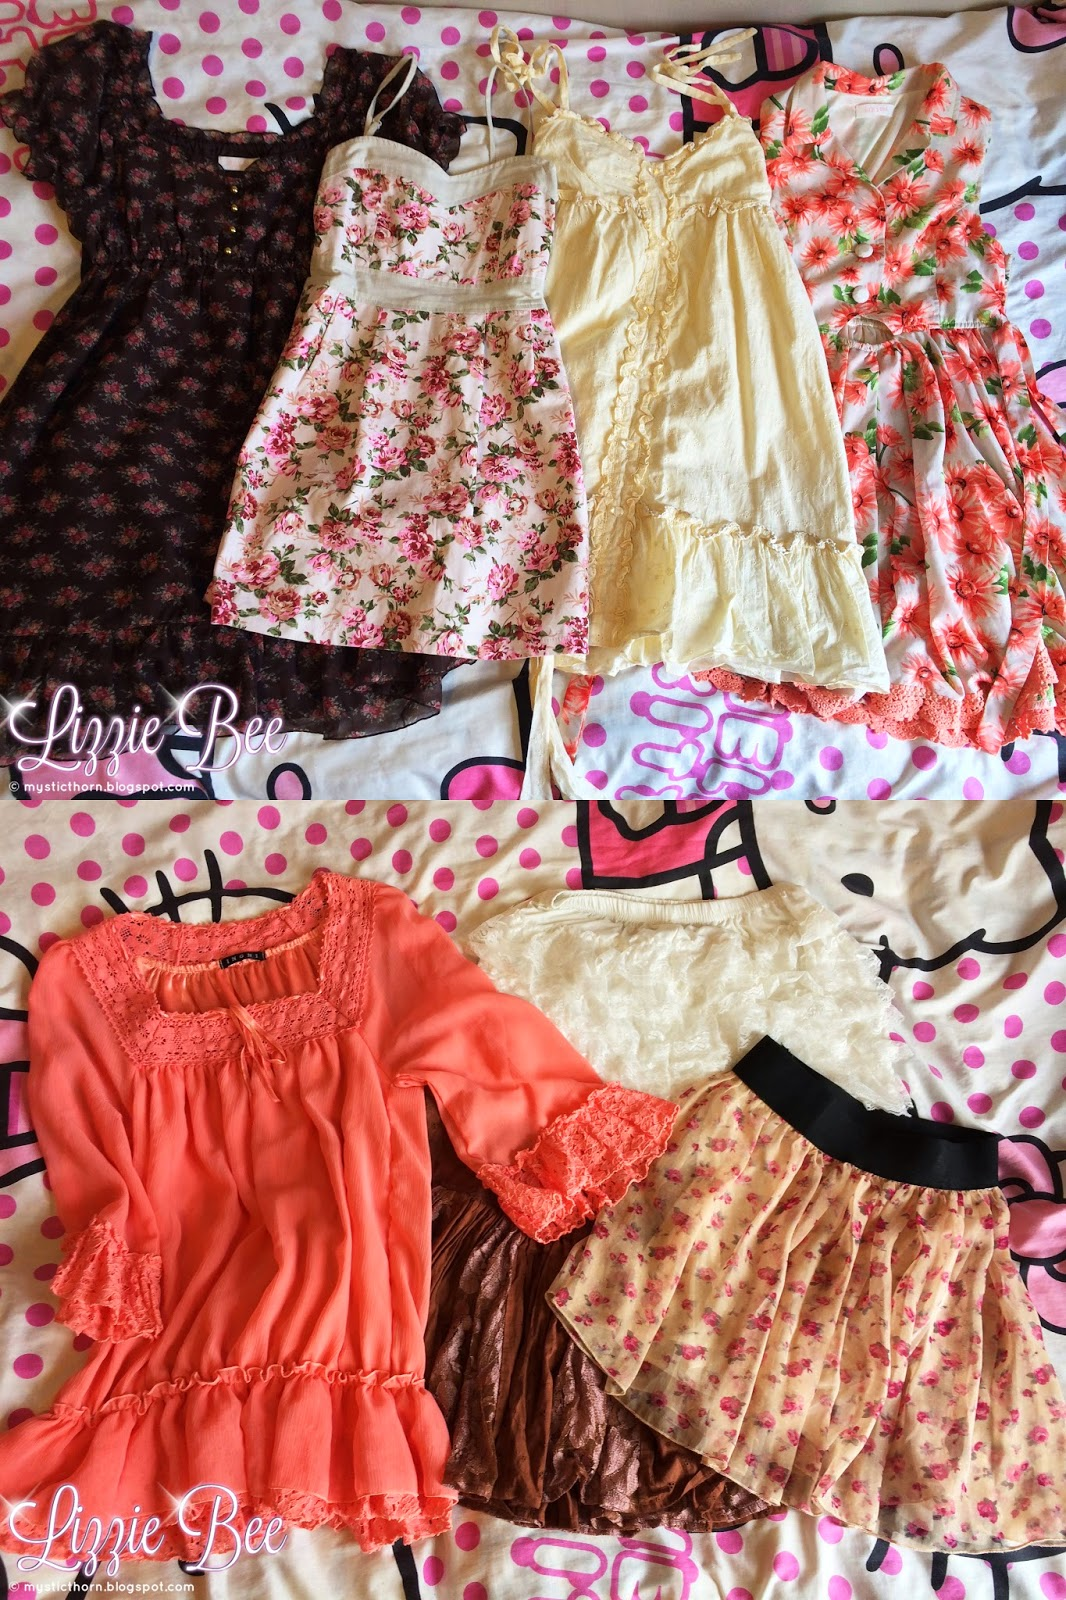 Himekaji gyaru wardrobe collection by hellolizziebee